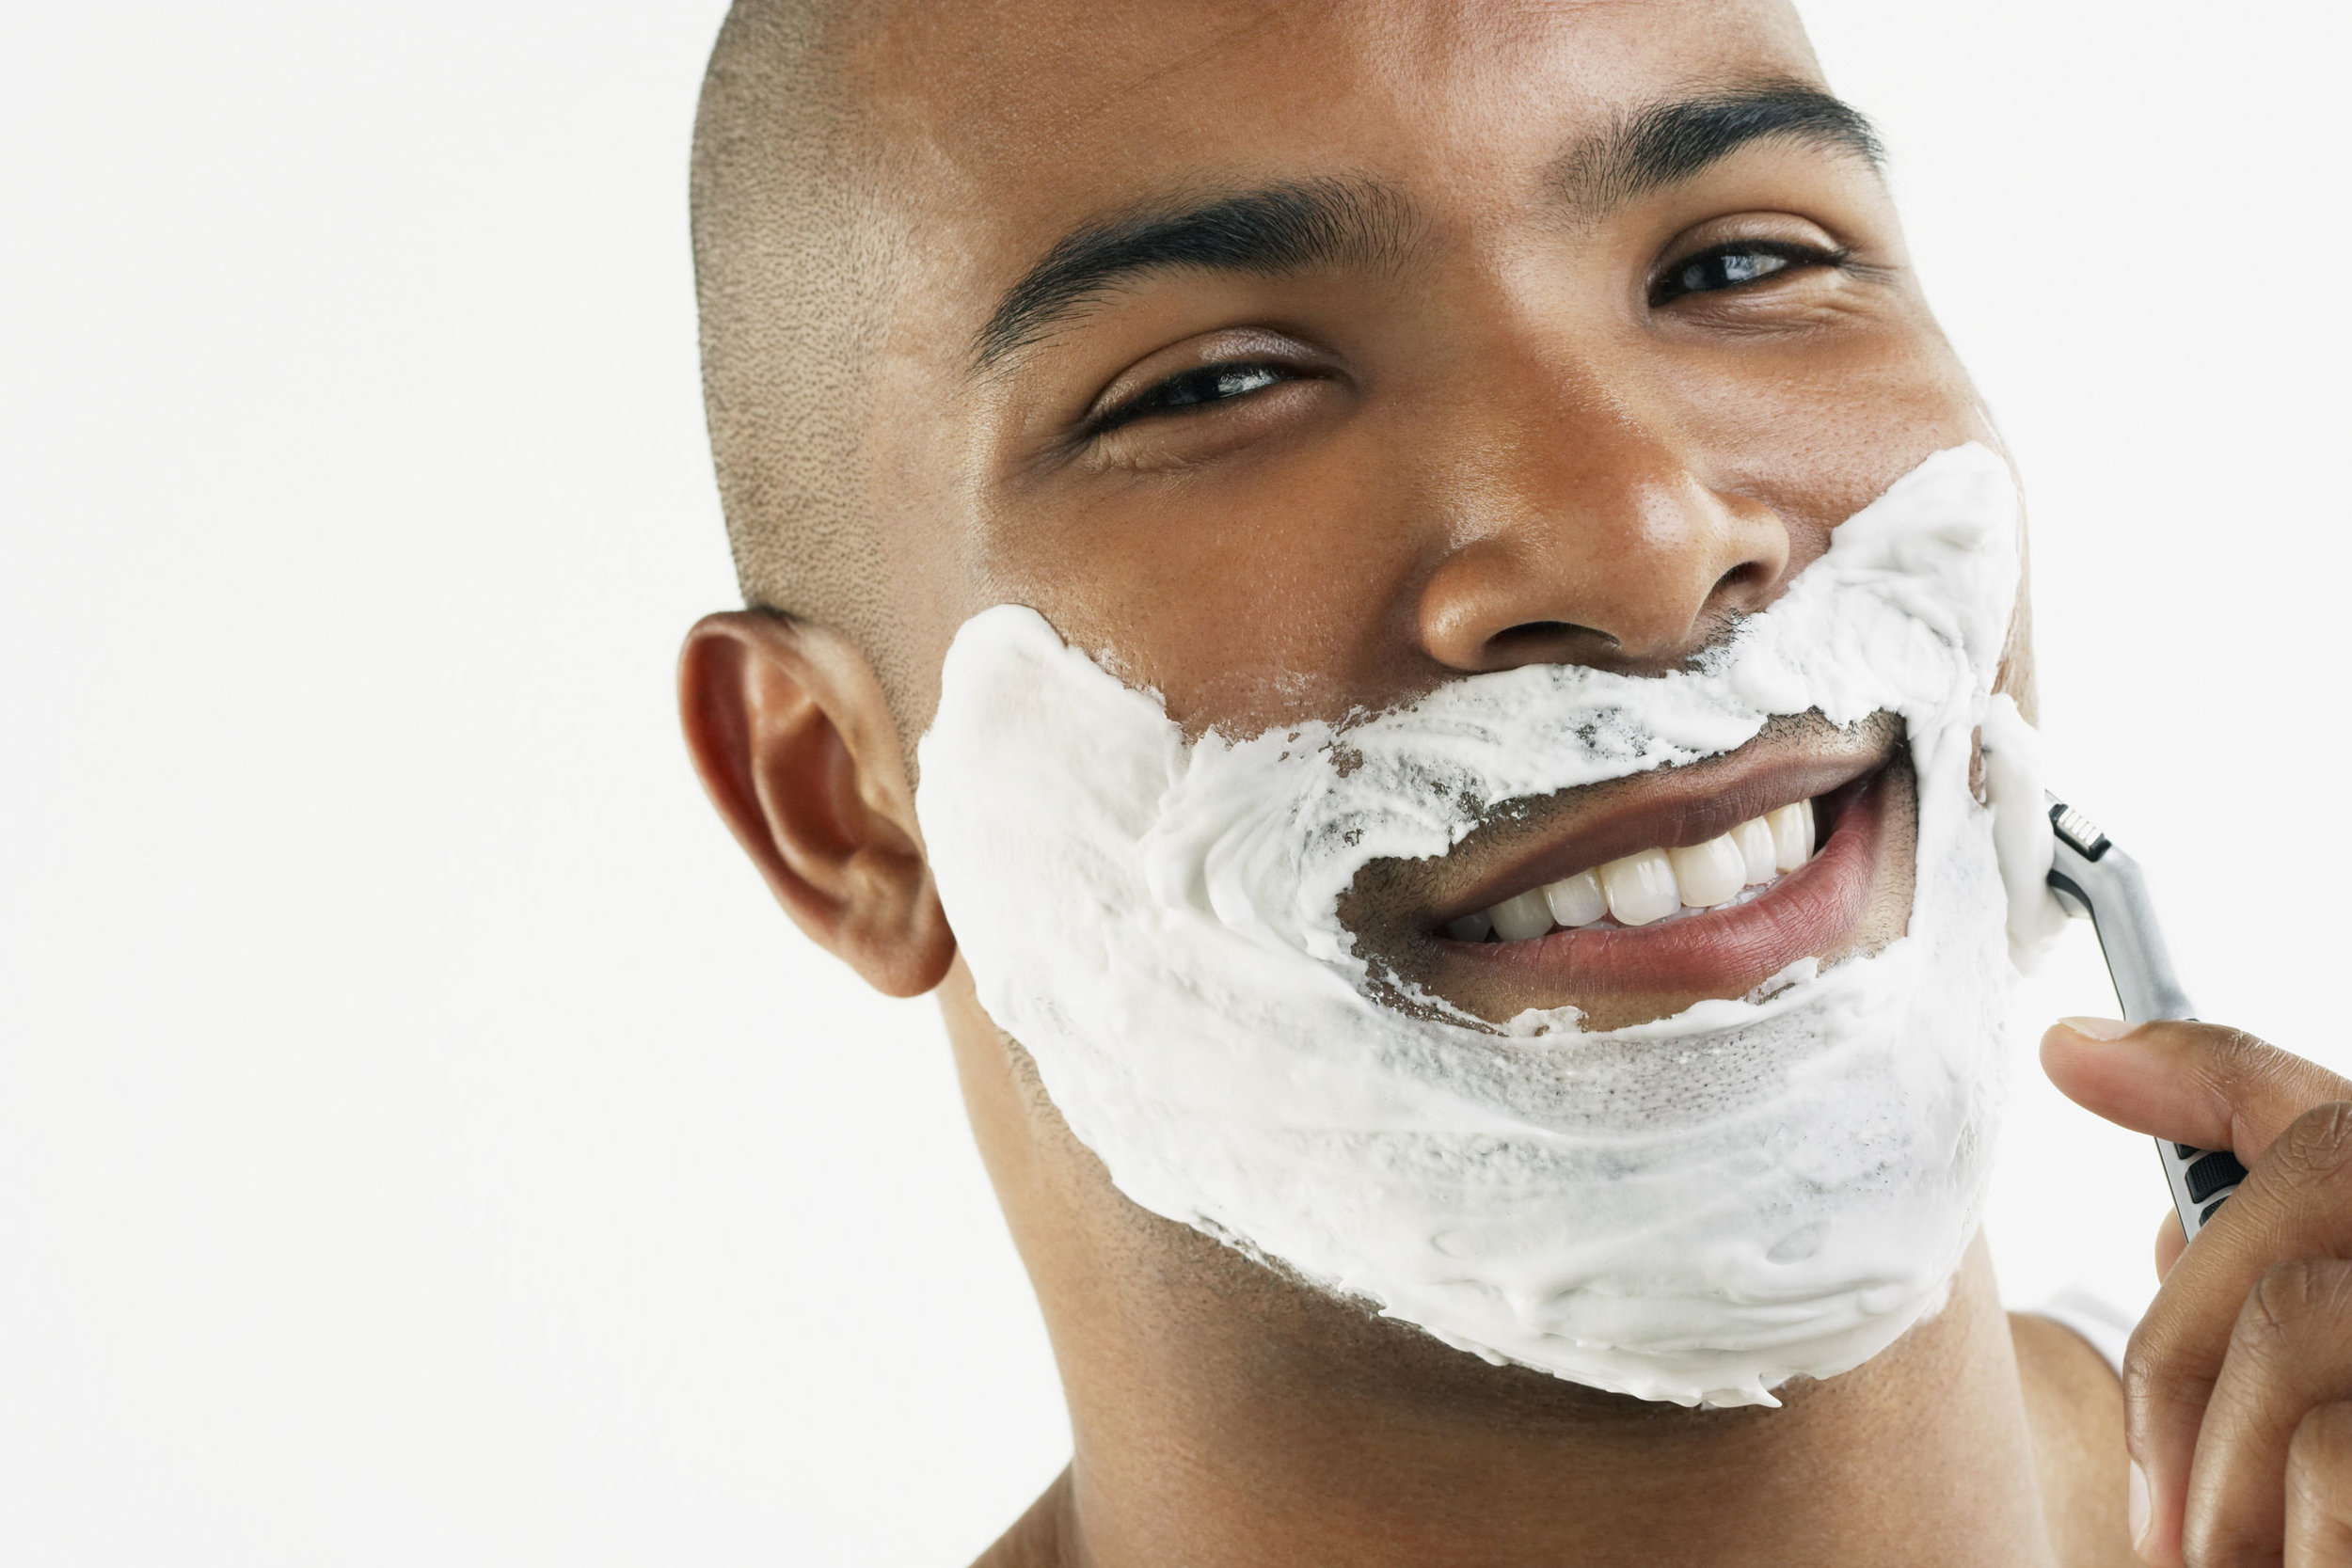 Be sure to shave using the proper tools to help prevent razor bumps and other skin irritations.